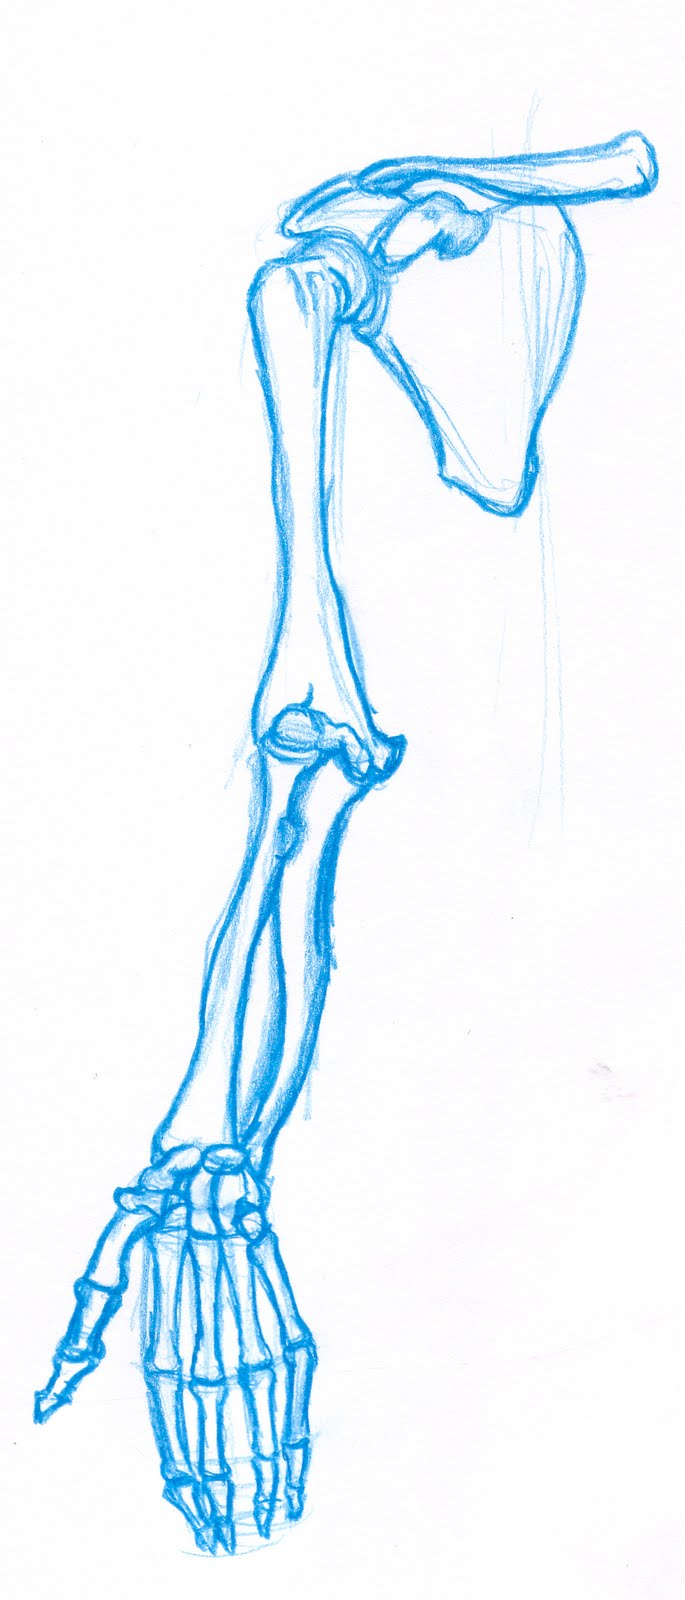 Skeleton_Arm